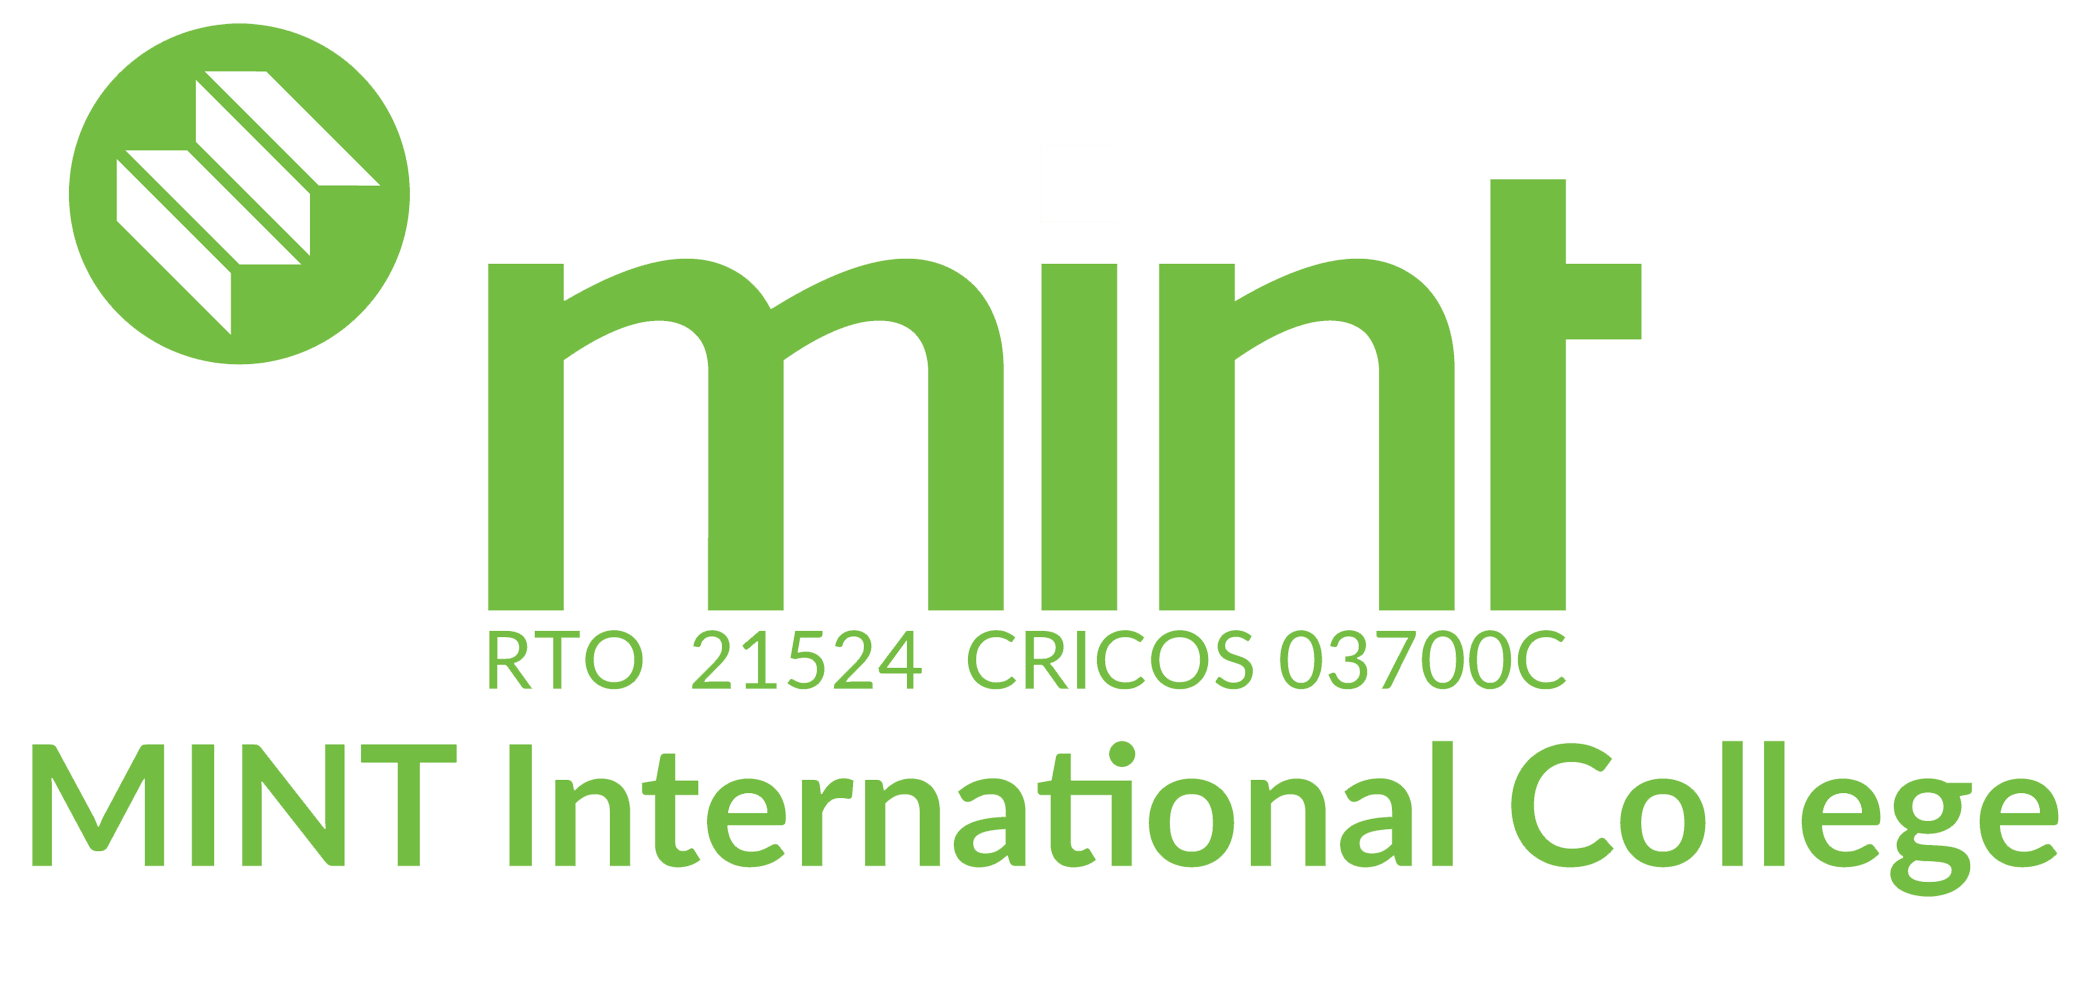 Mint International College